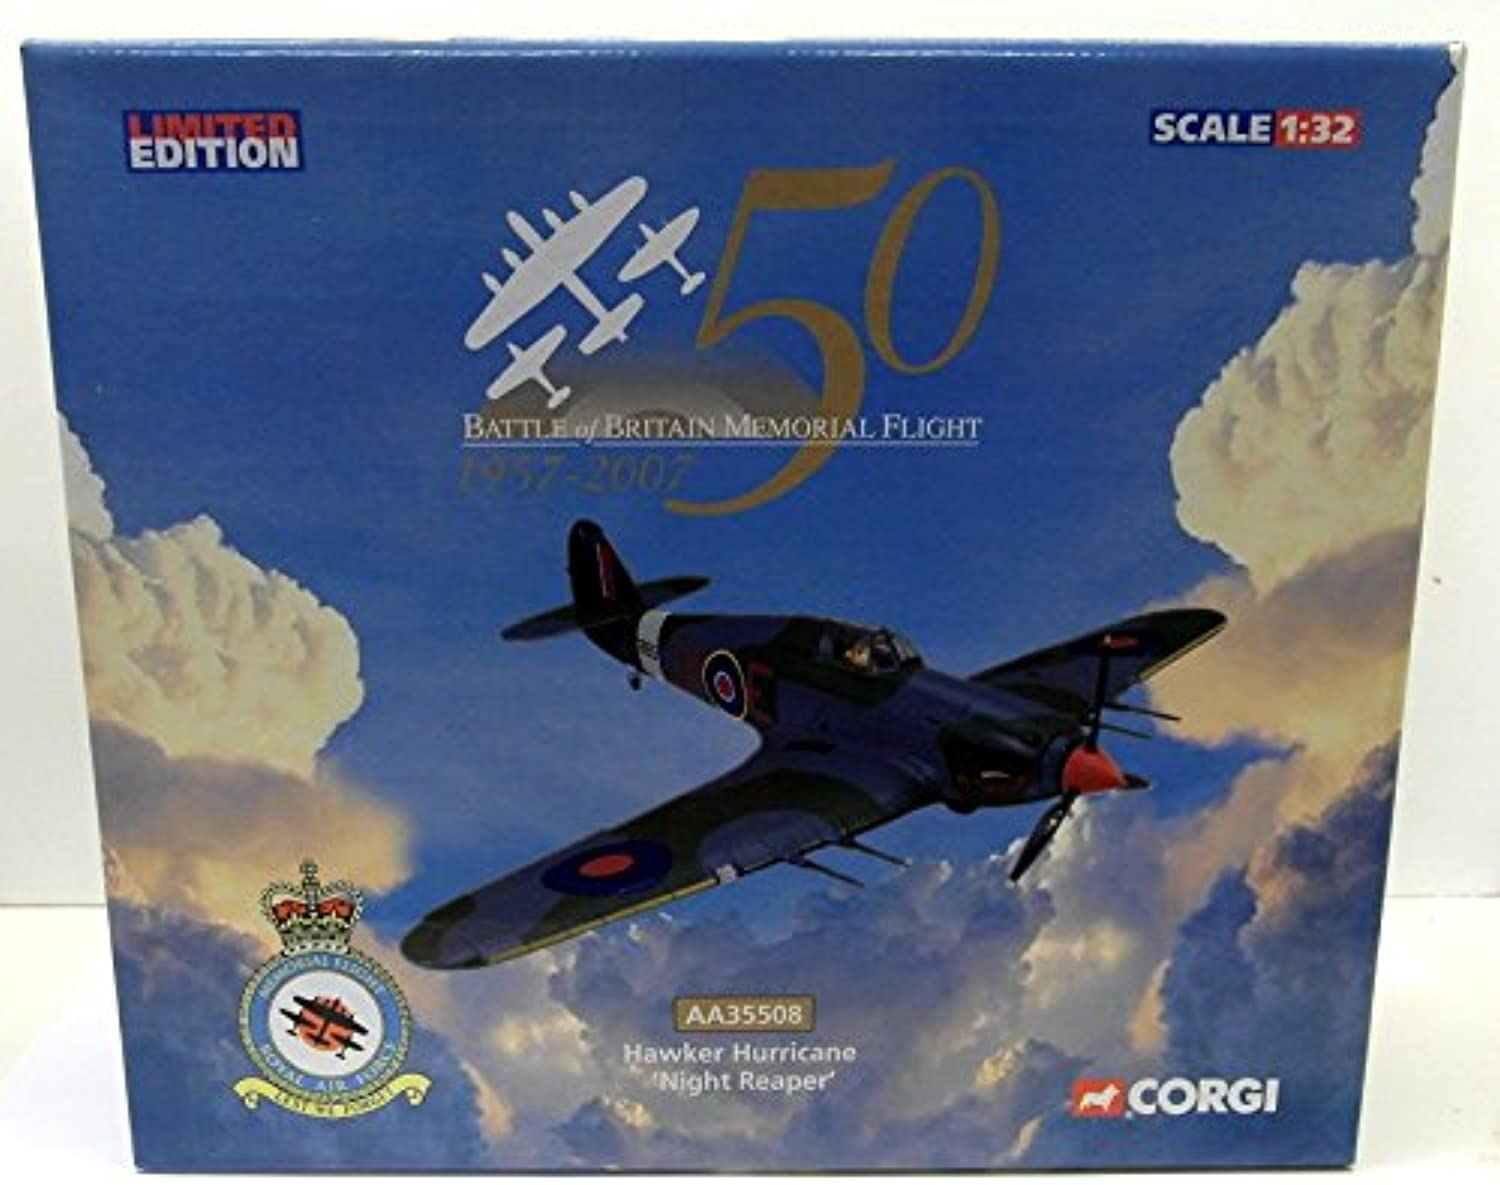 Corgi 1 32 AA35508 Hawker Hurricane 'Night Reaper' Battle Of Britain Model Plane B00I9893BC Creative  | München Online Shop